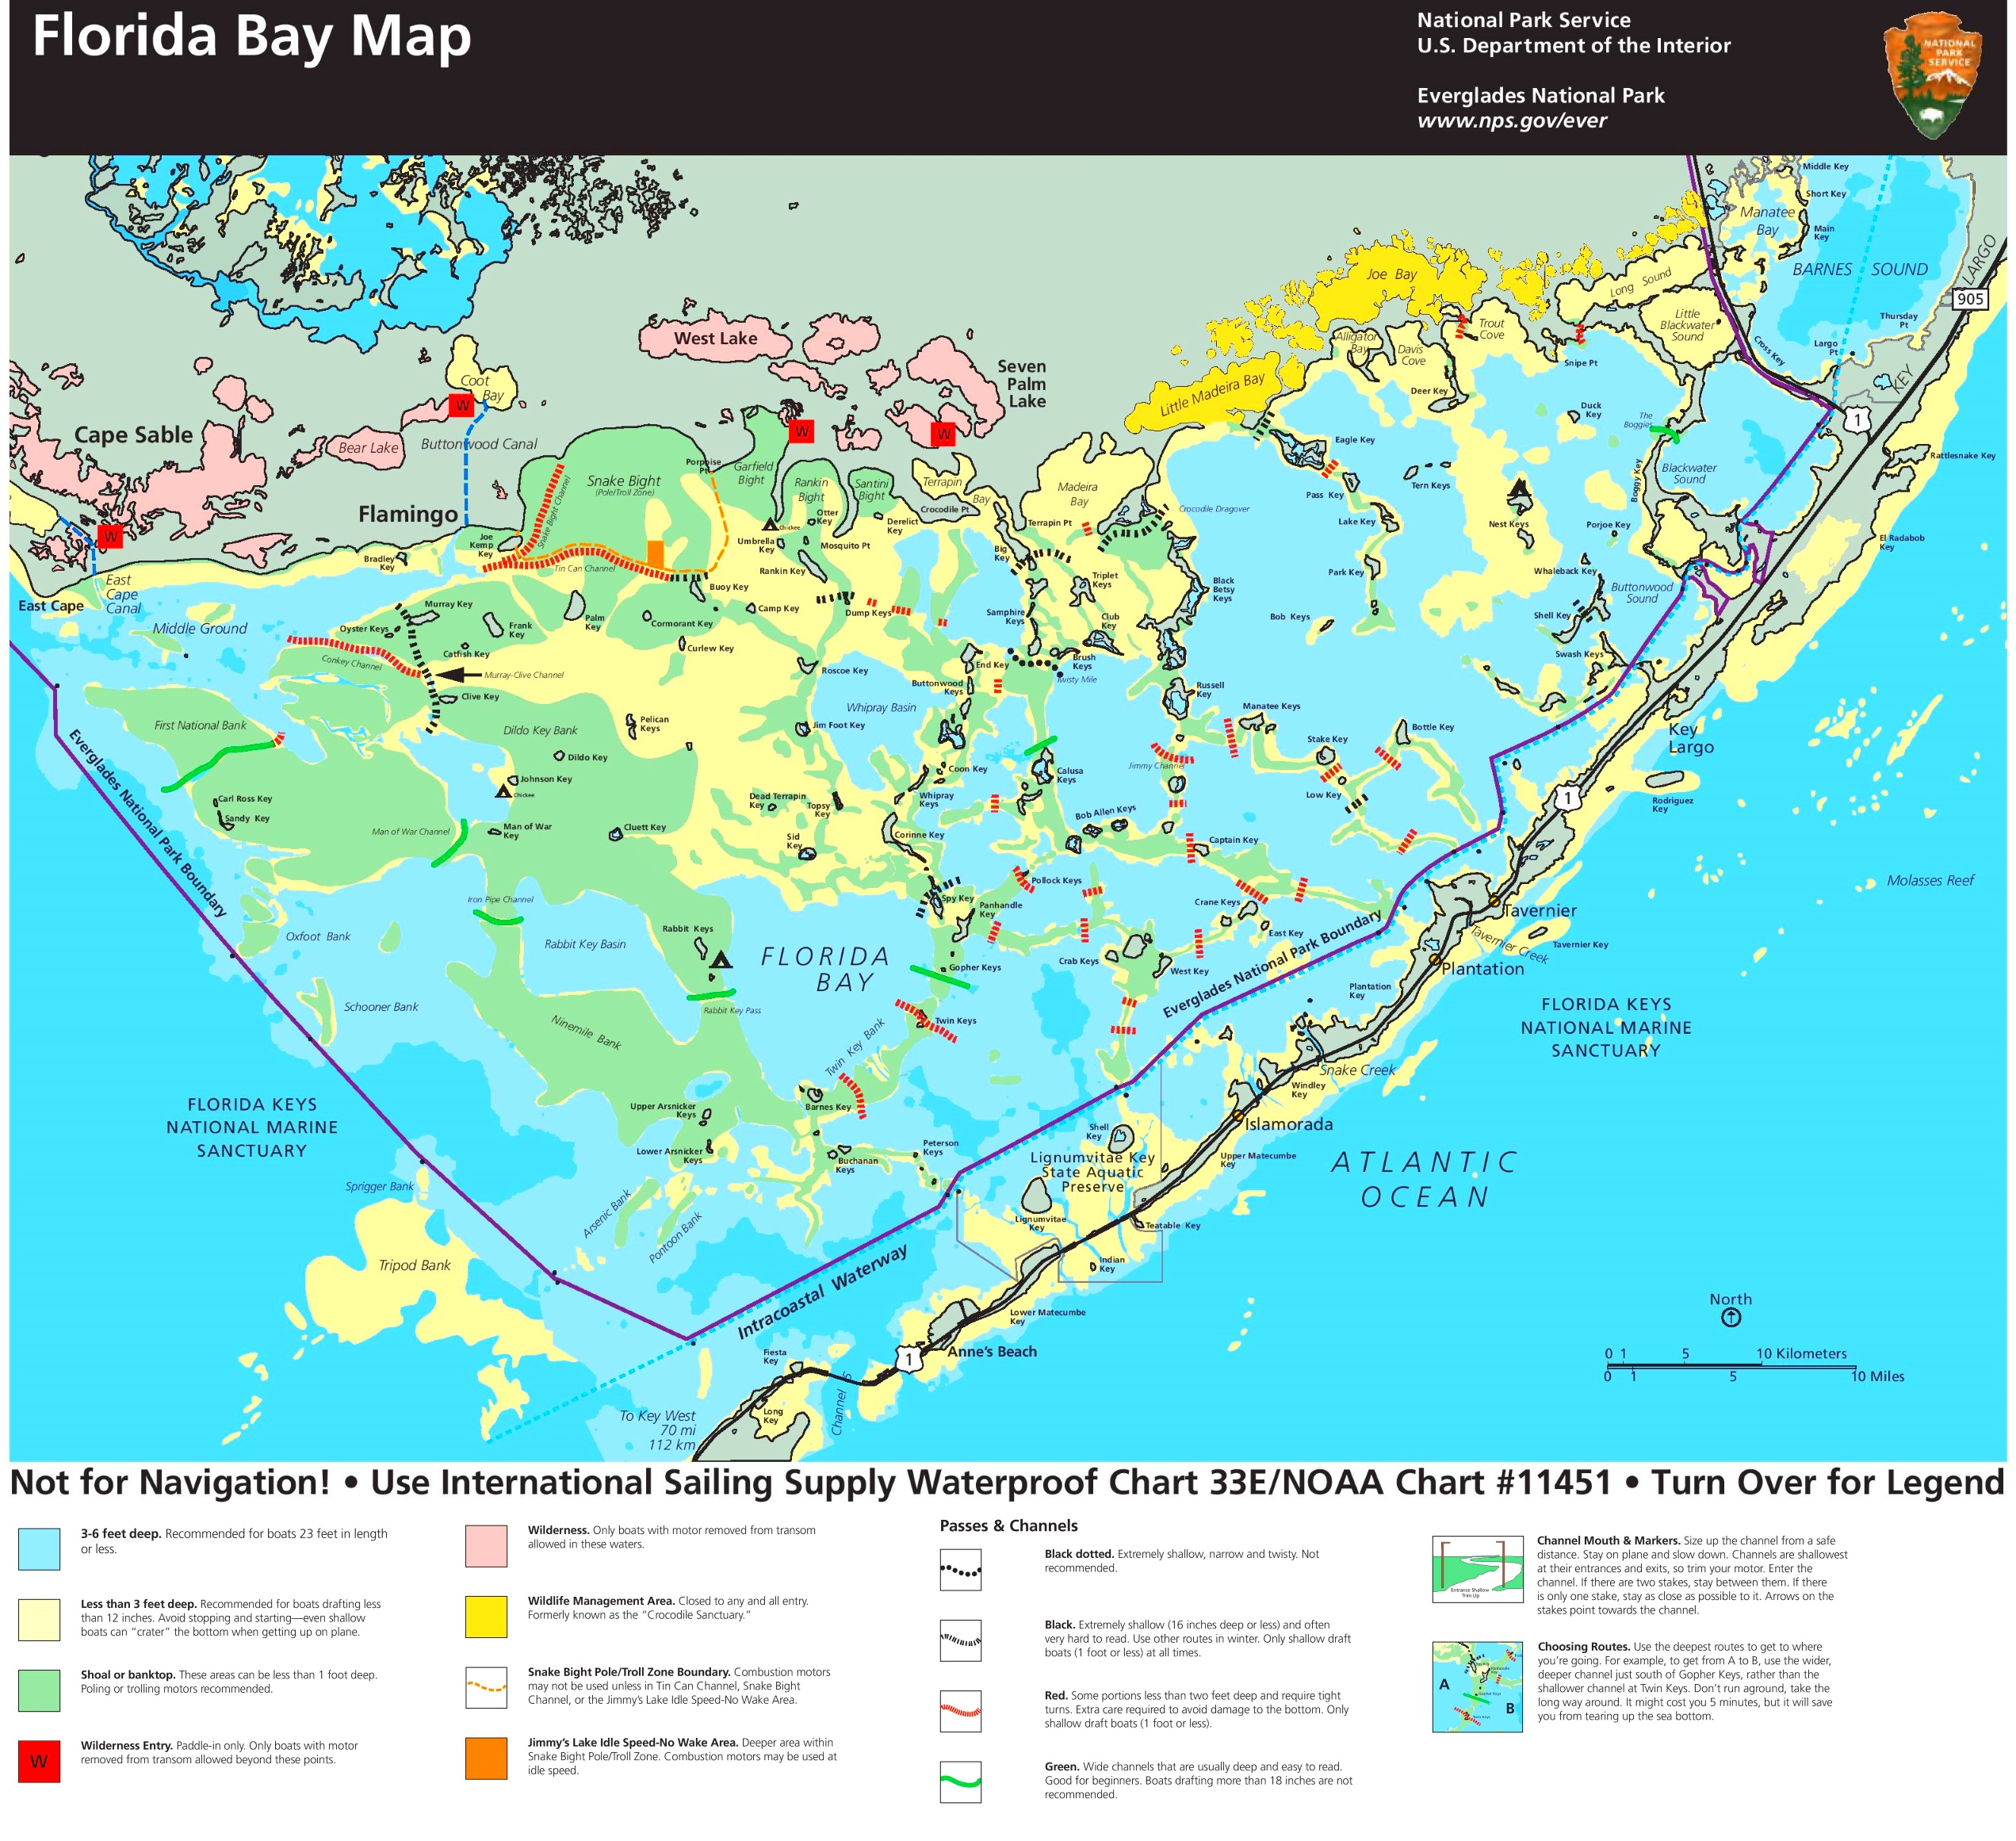 Florida Bay Map - Florida Everglades Map